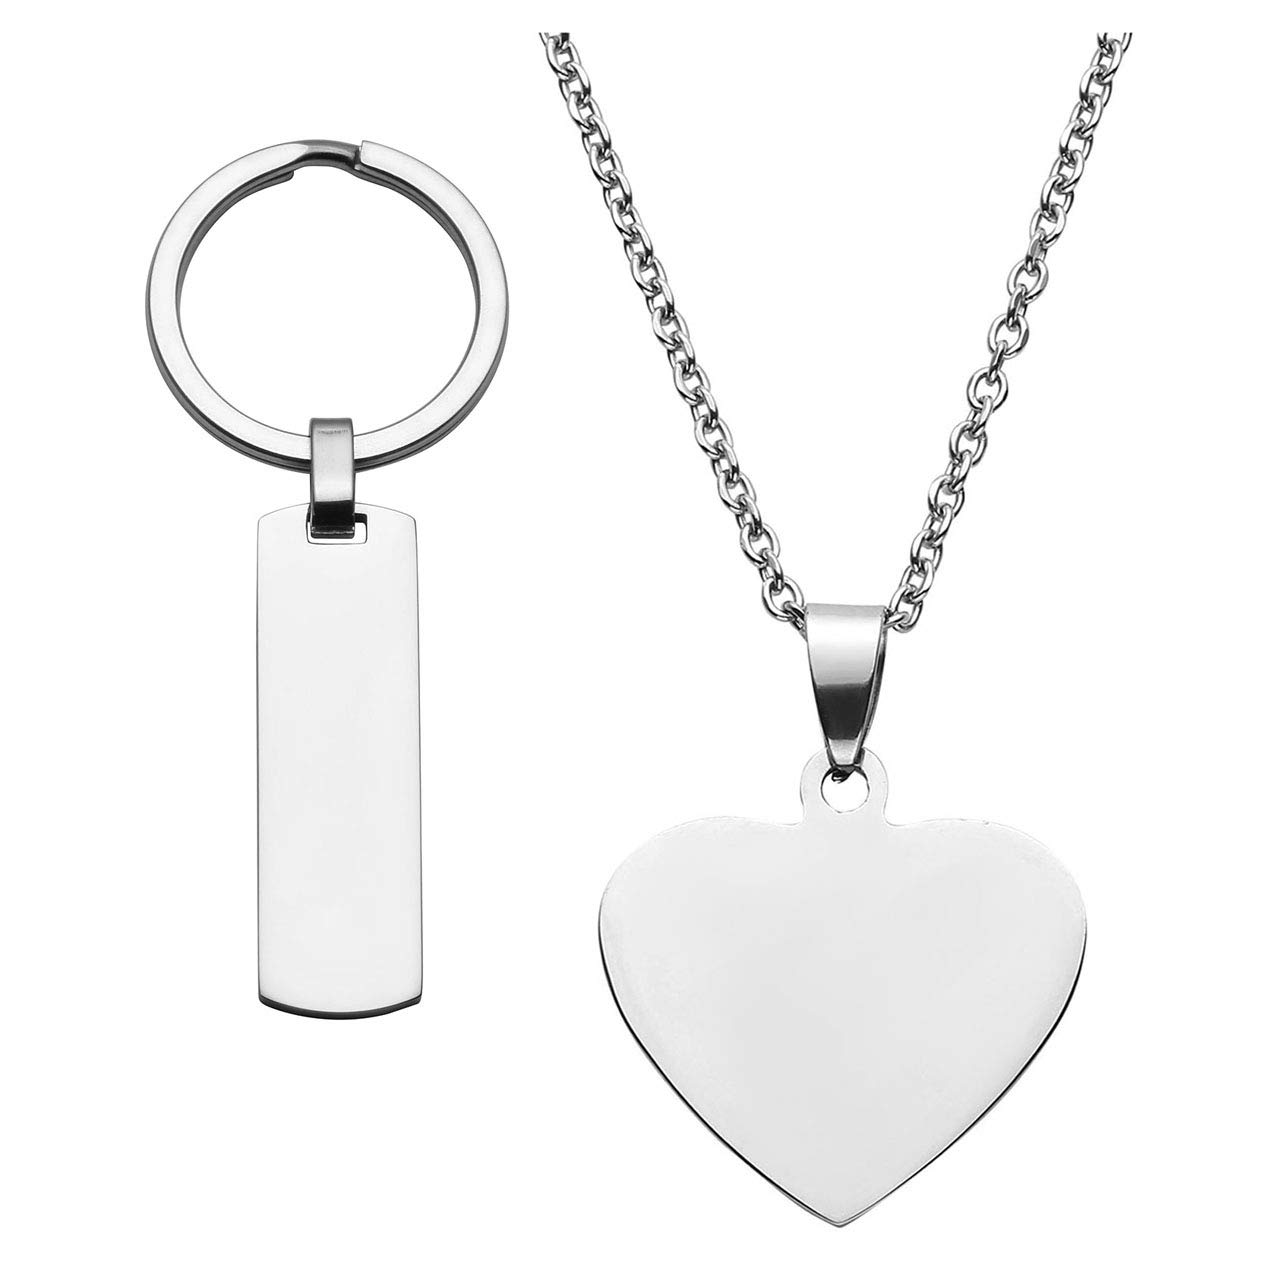 PiercingJ Personalized Custom Engraved Name Gold Silver Stainless Steel Dog Tag ID Keychain Key Ring + Heart Shape Pendant Necklace Chain for Couple Lovers Family